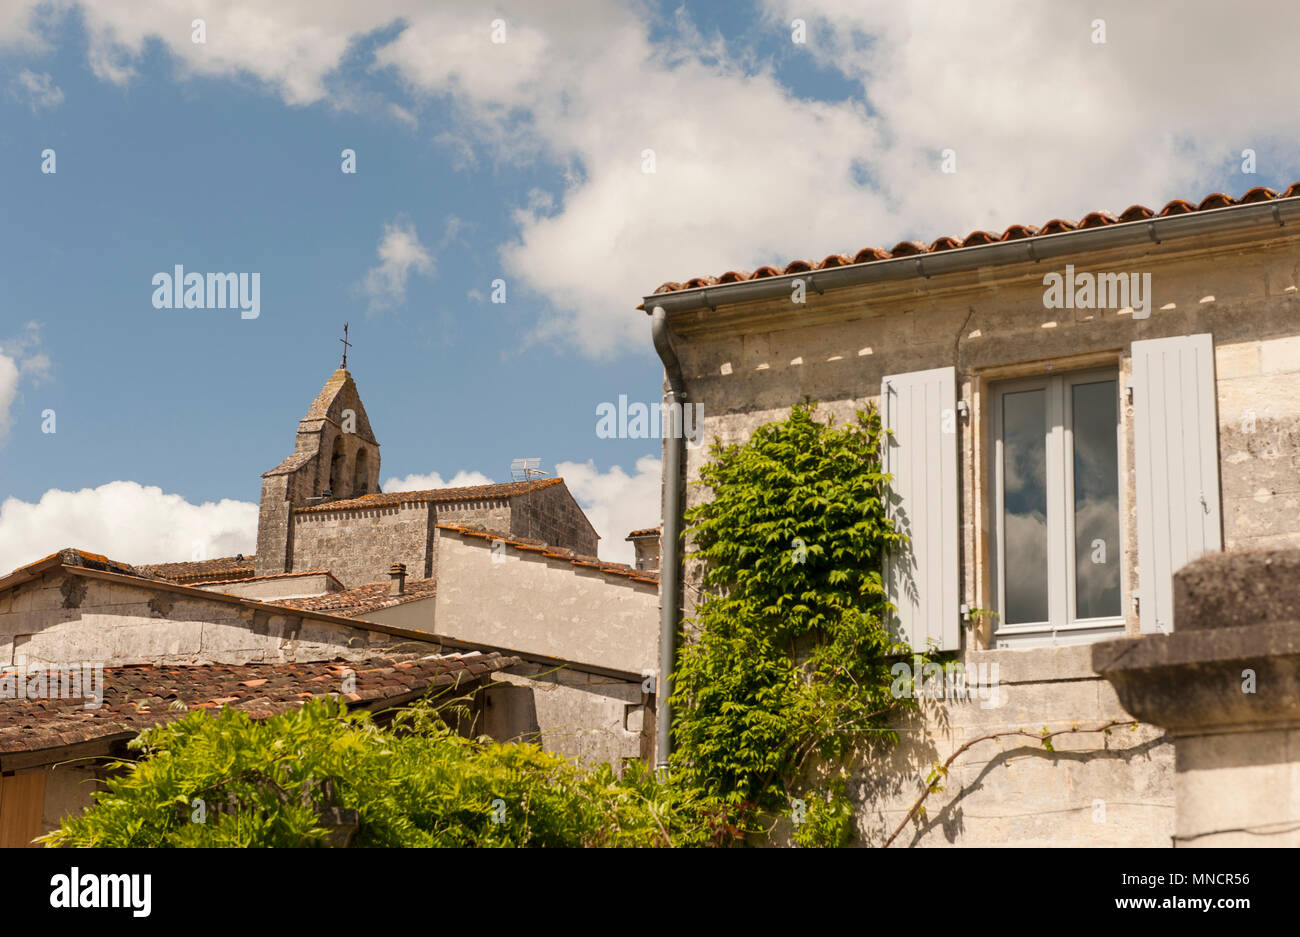 The parish church was erected on the highest point of Saint-Simon, Charente, France - Stock Image